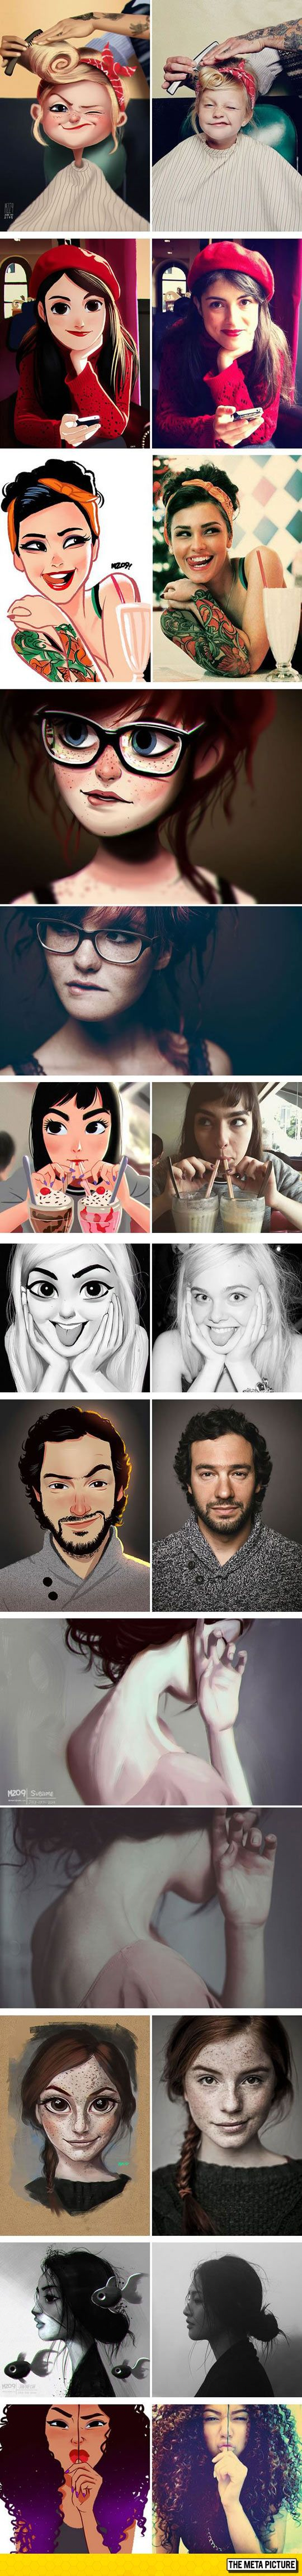 Artist Turns Photos Of Random People Into Fun Illustrations. I want this done :)